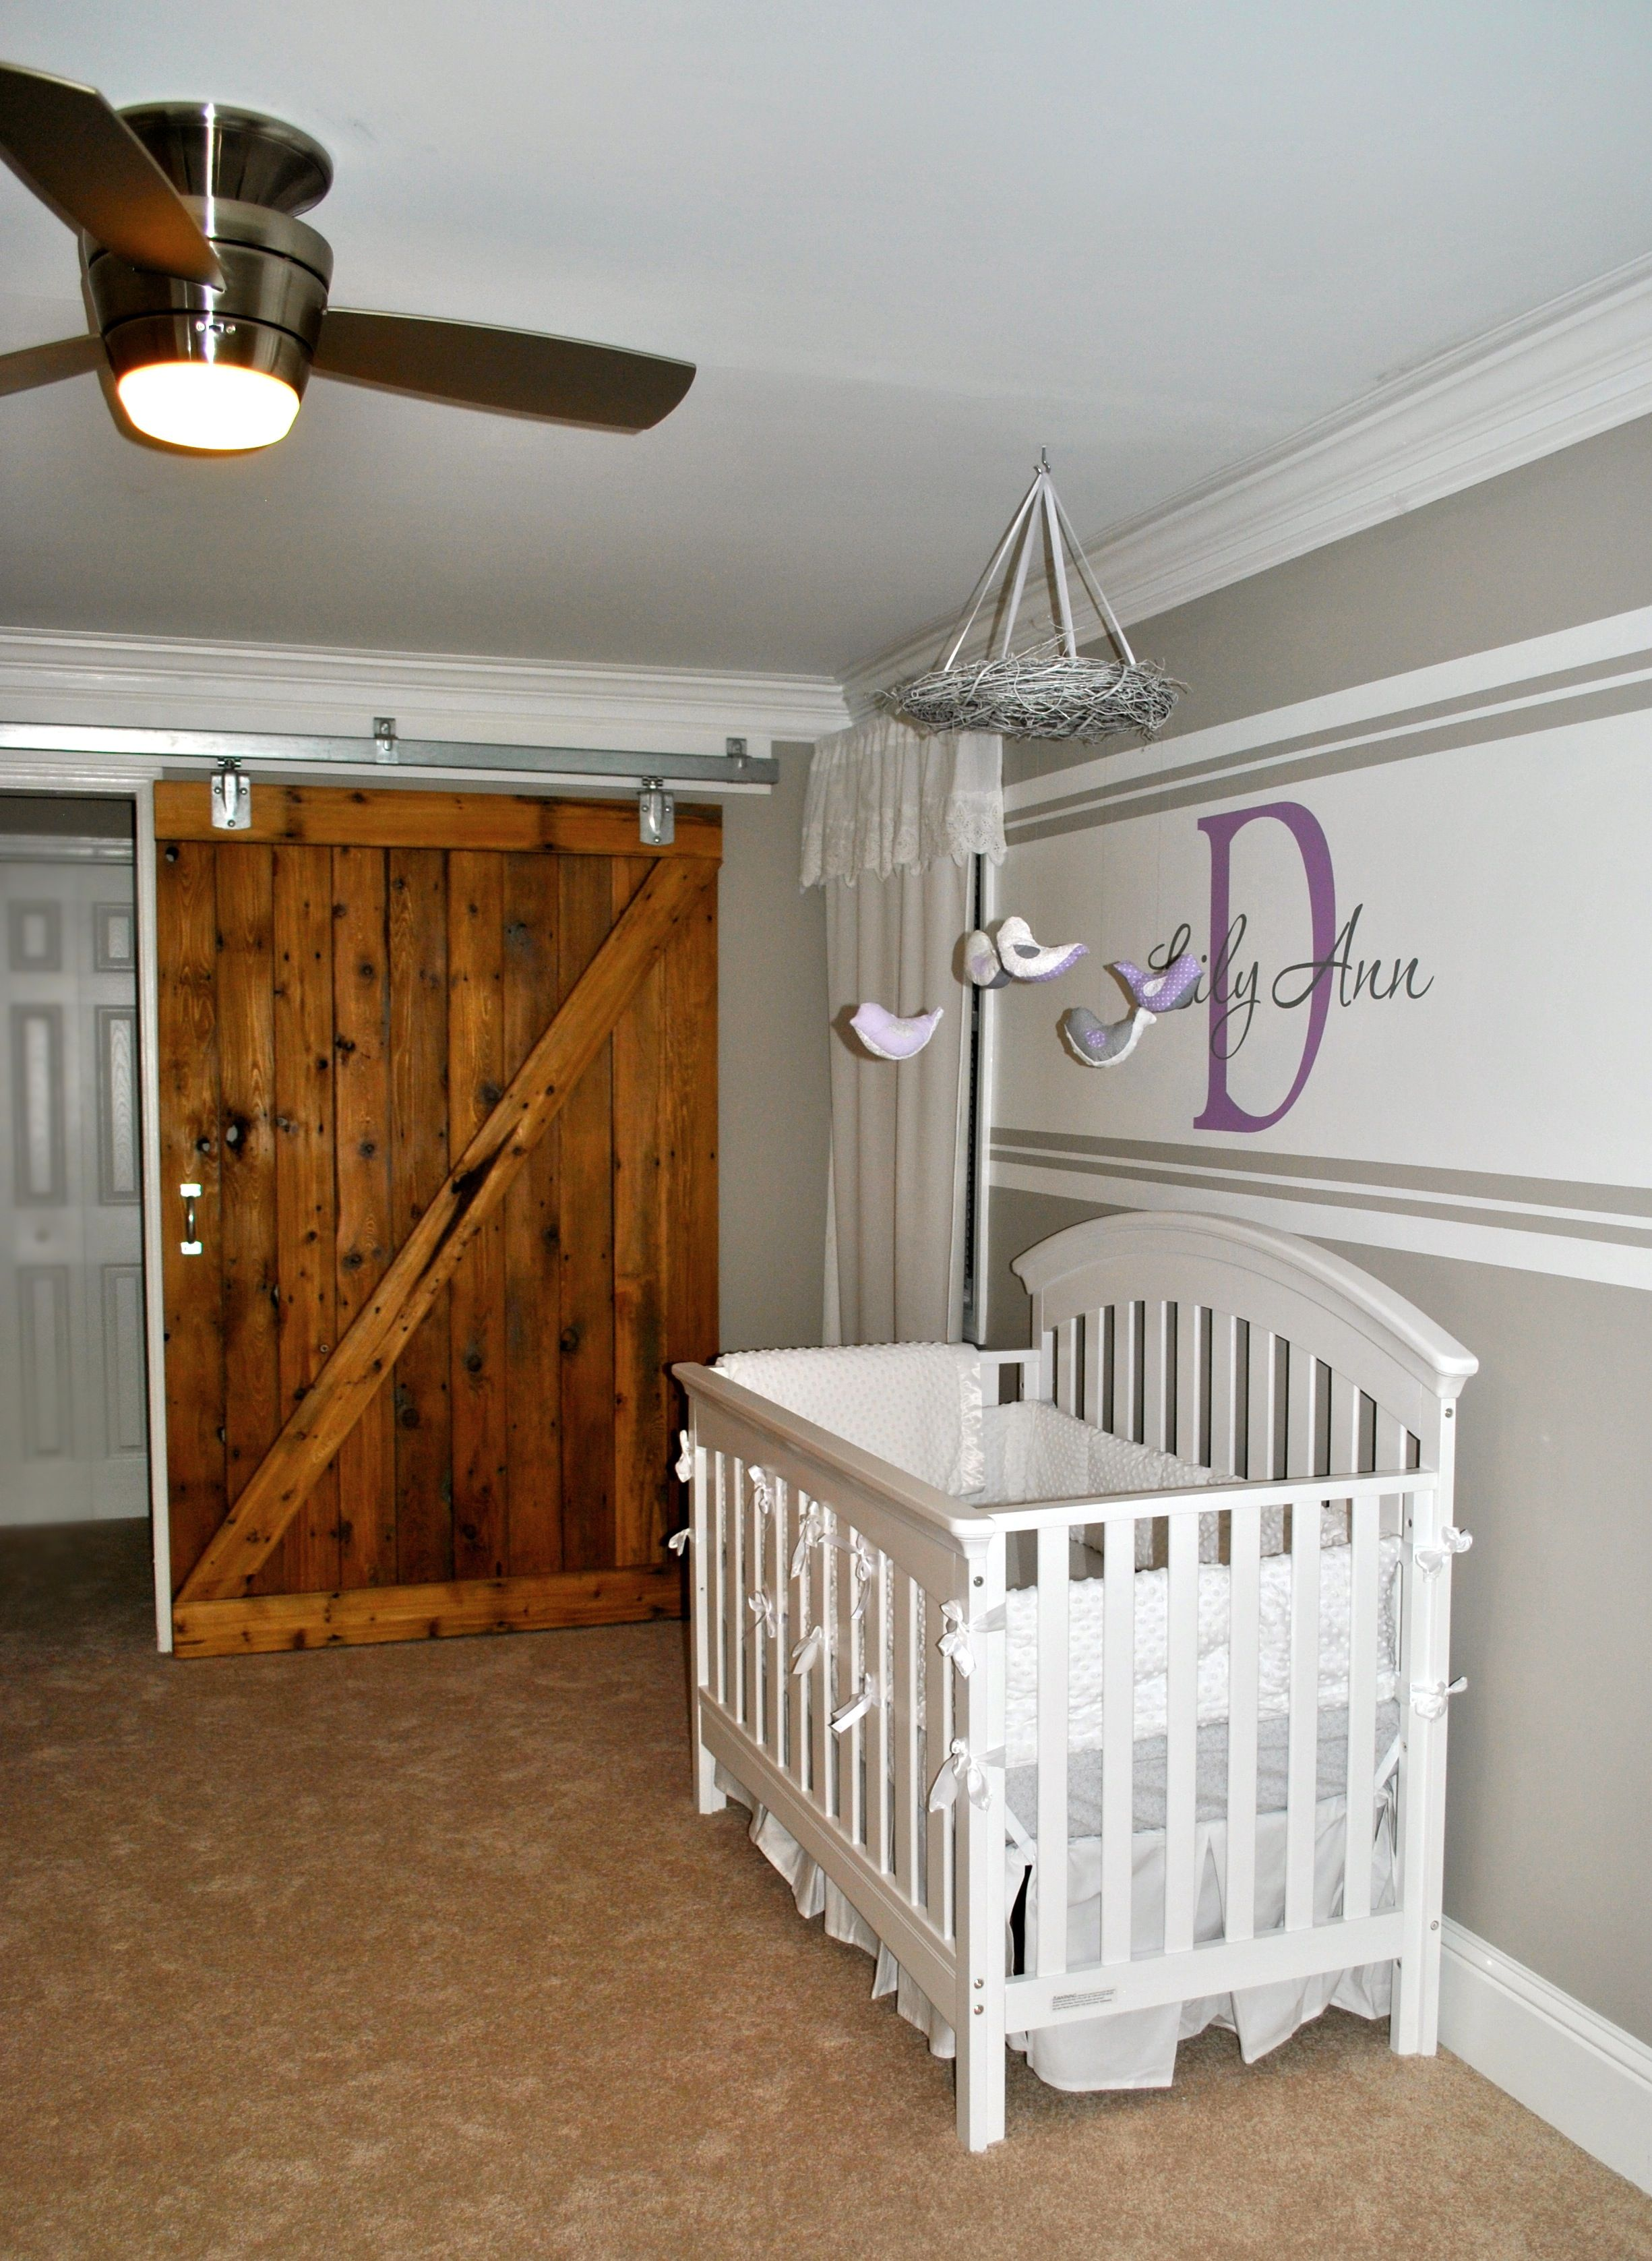 Sliding Barn Door Nursery Courtesy Of Amanda Pilcher Dobanton